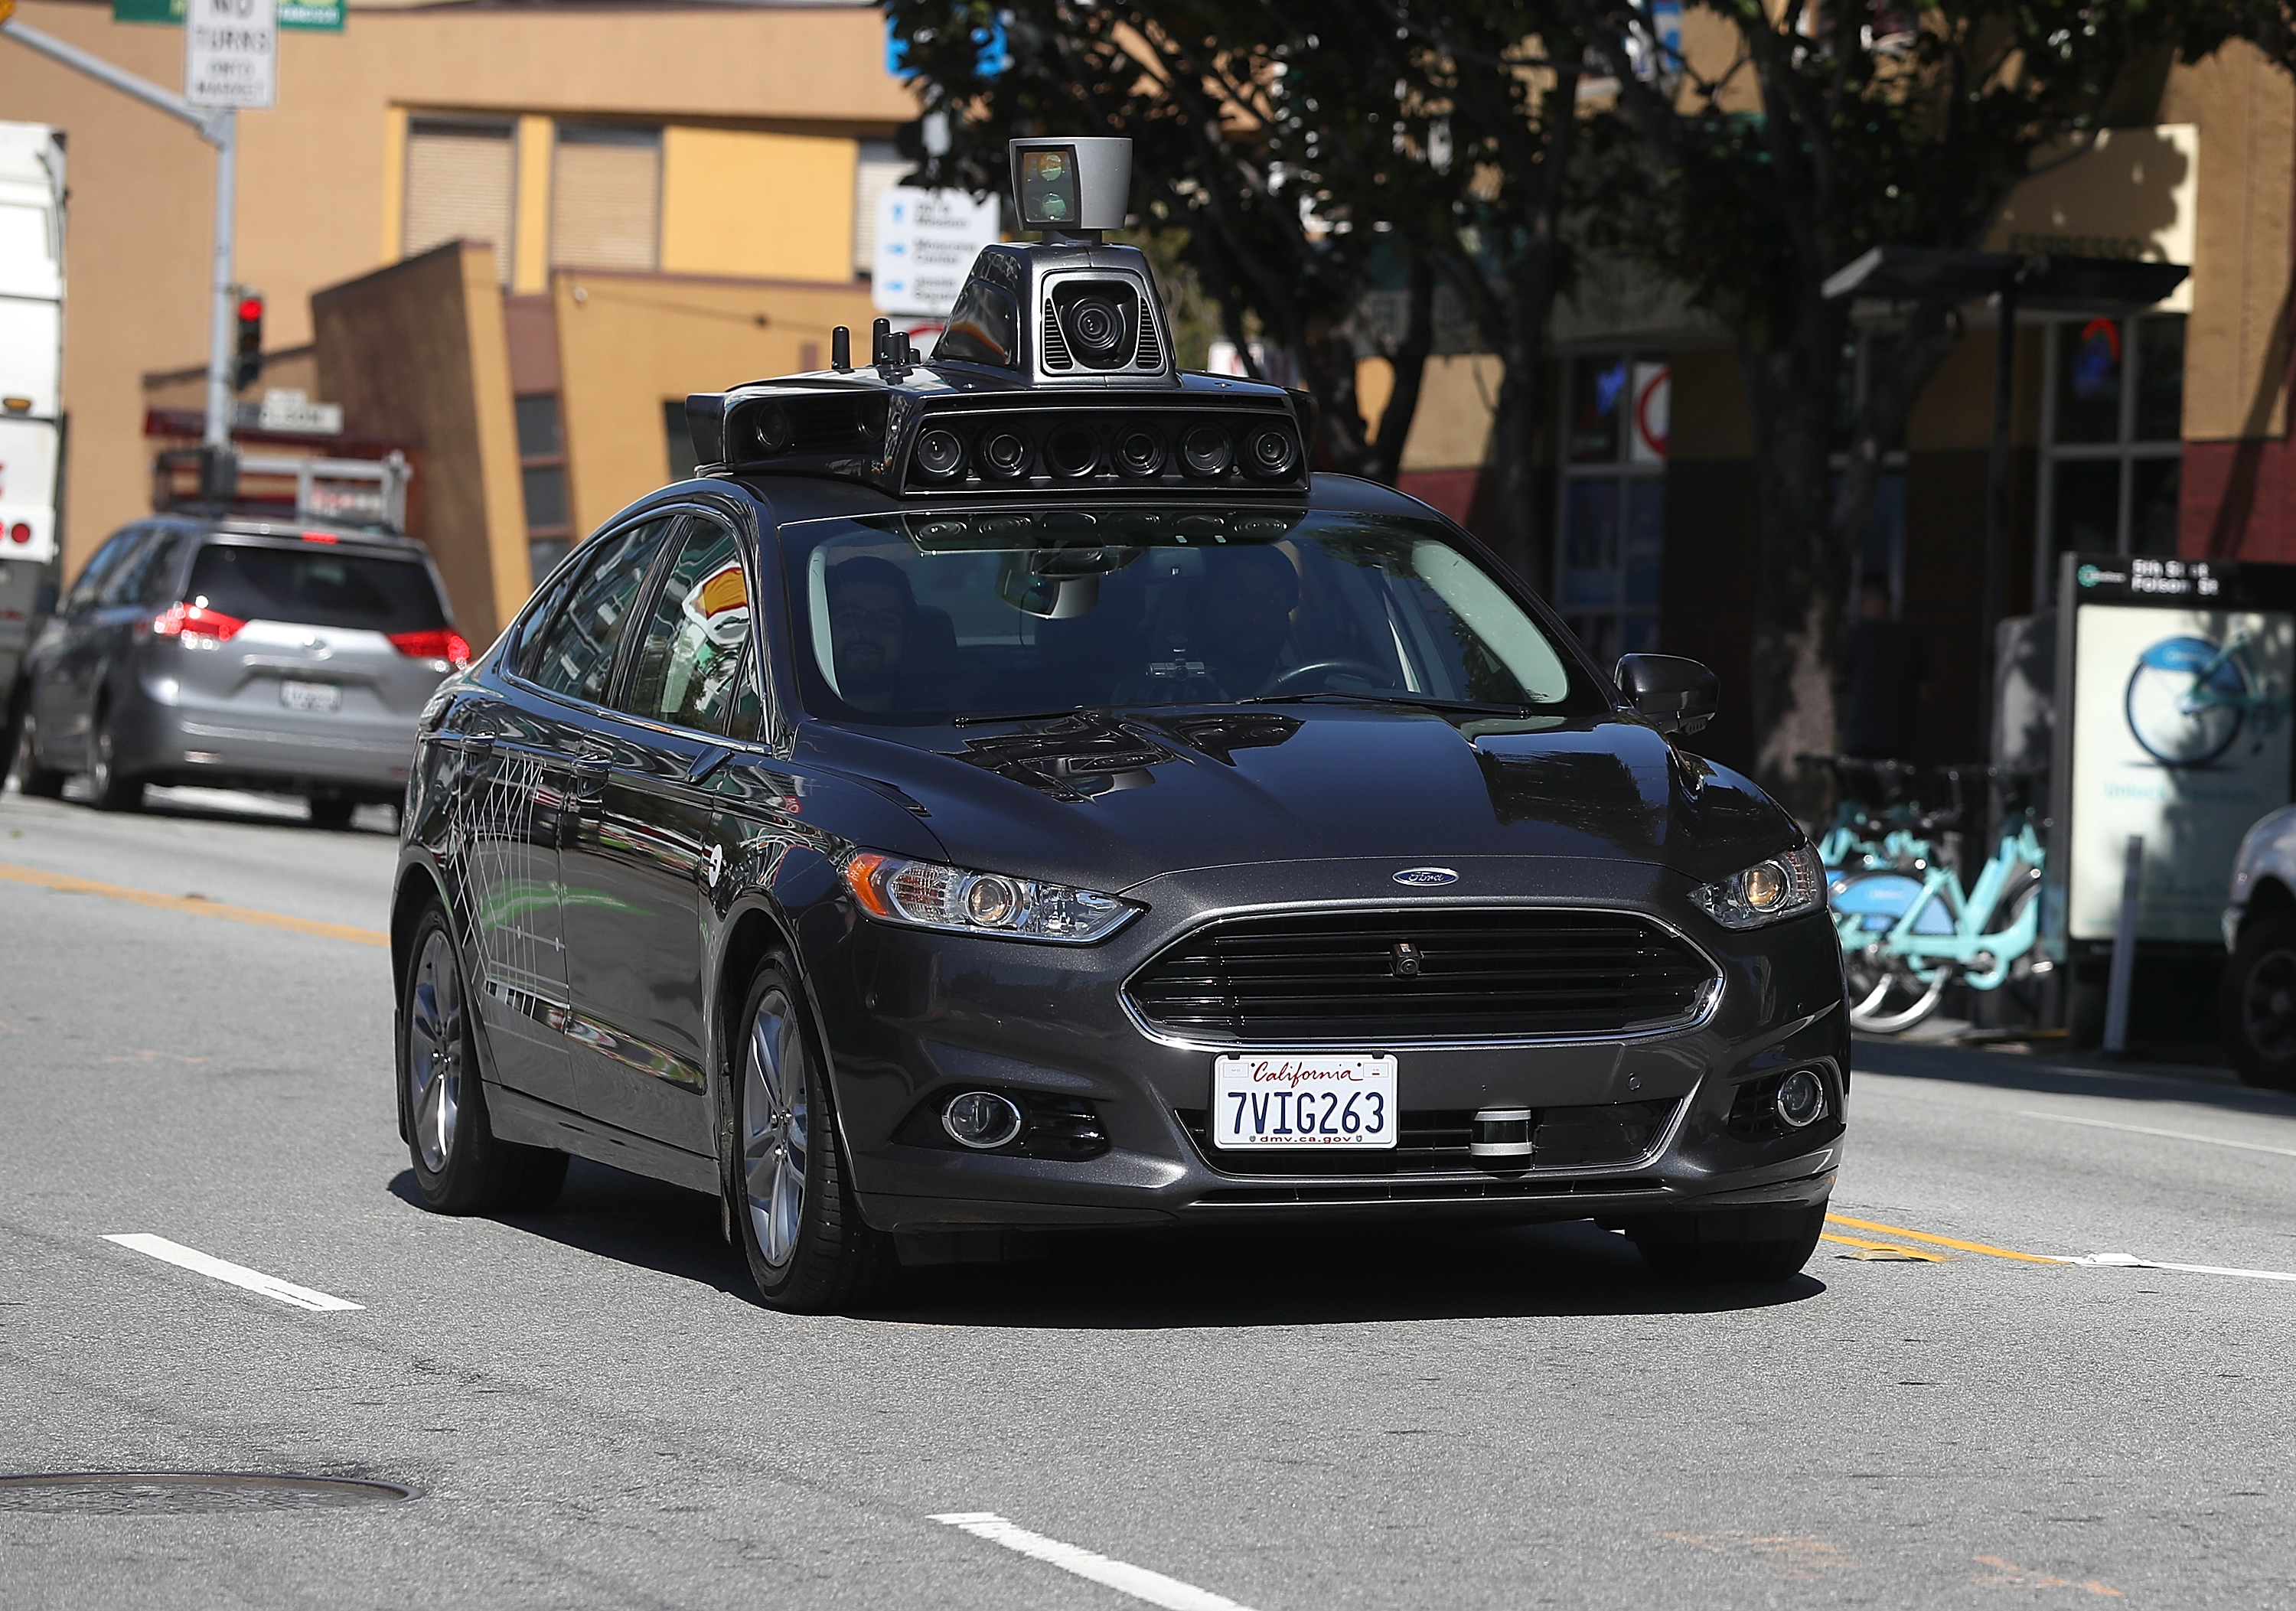 California may approve human-free driverless cars - Curbed SF